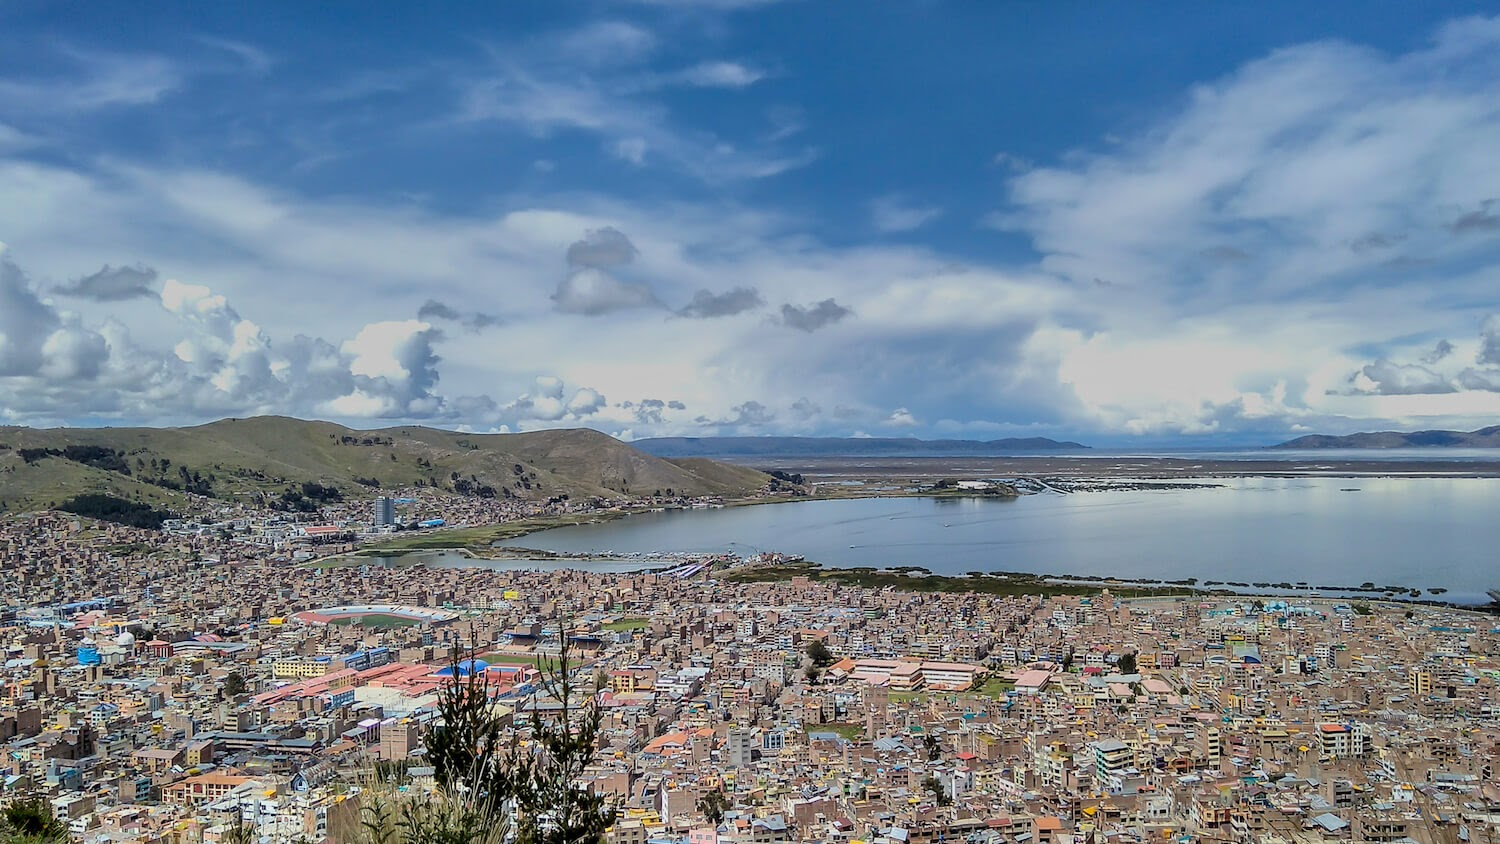 Puno+and+lake+titicaca+from+hilltop+near+Puno+peru